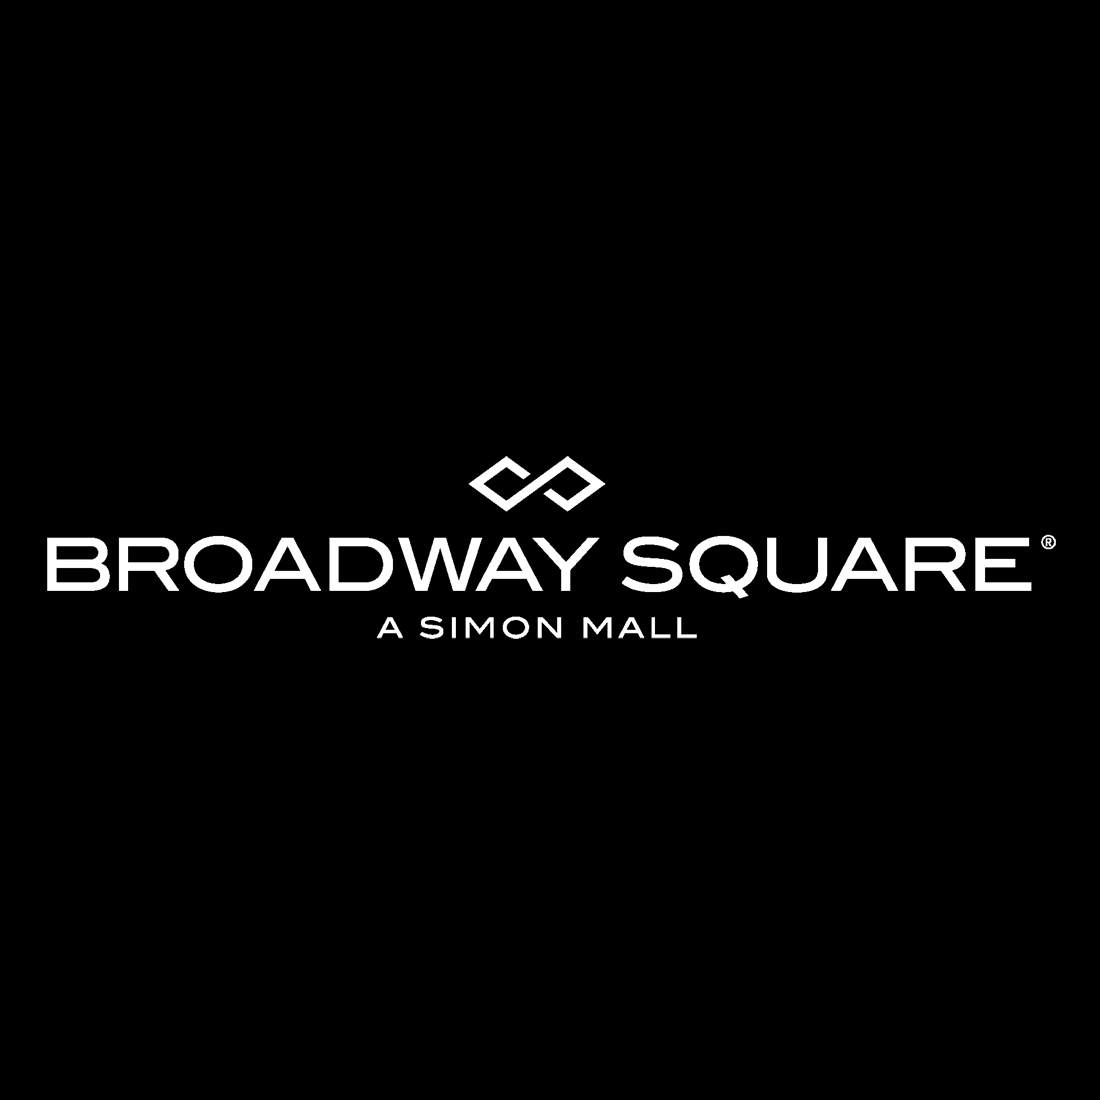 Broadway Square